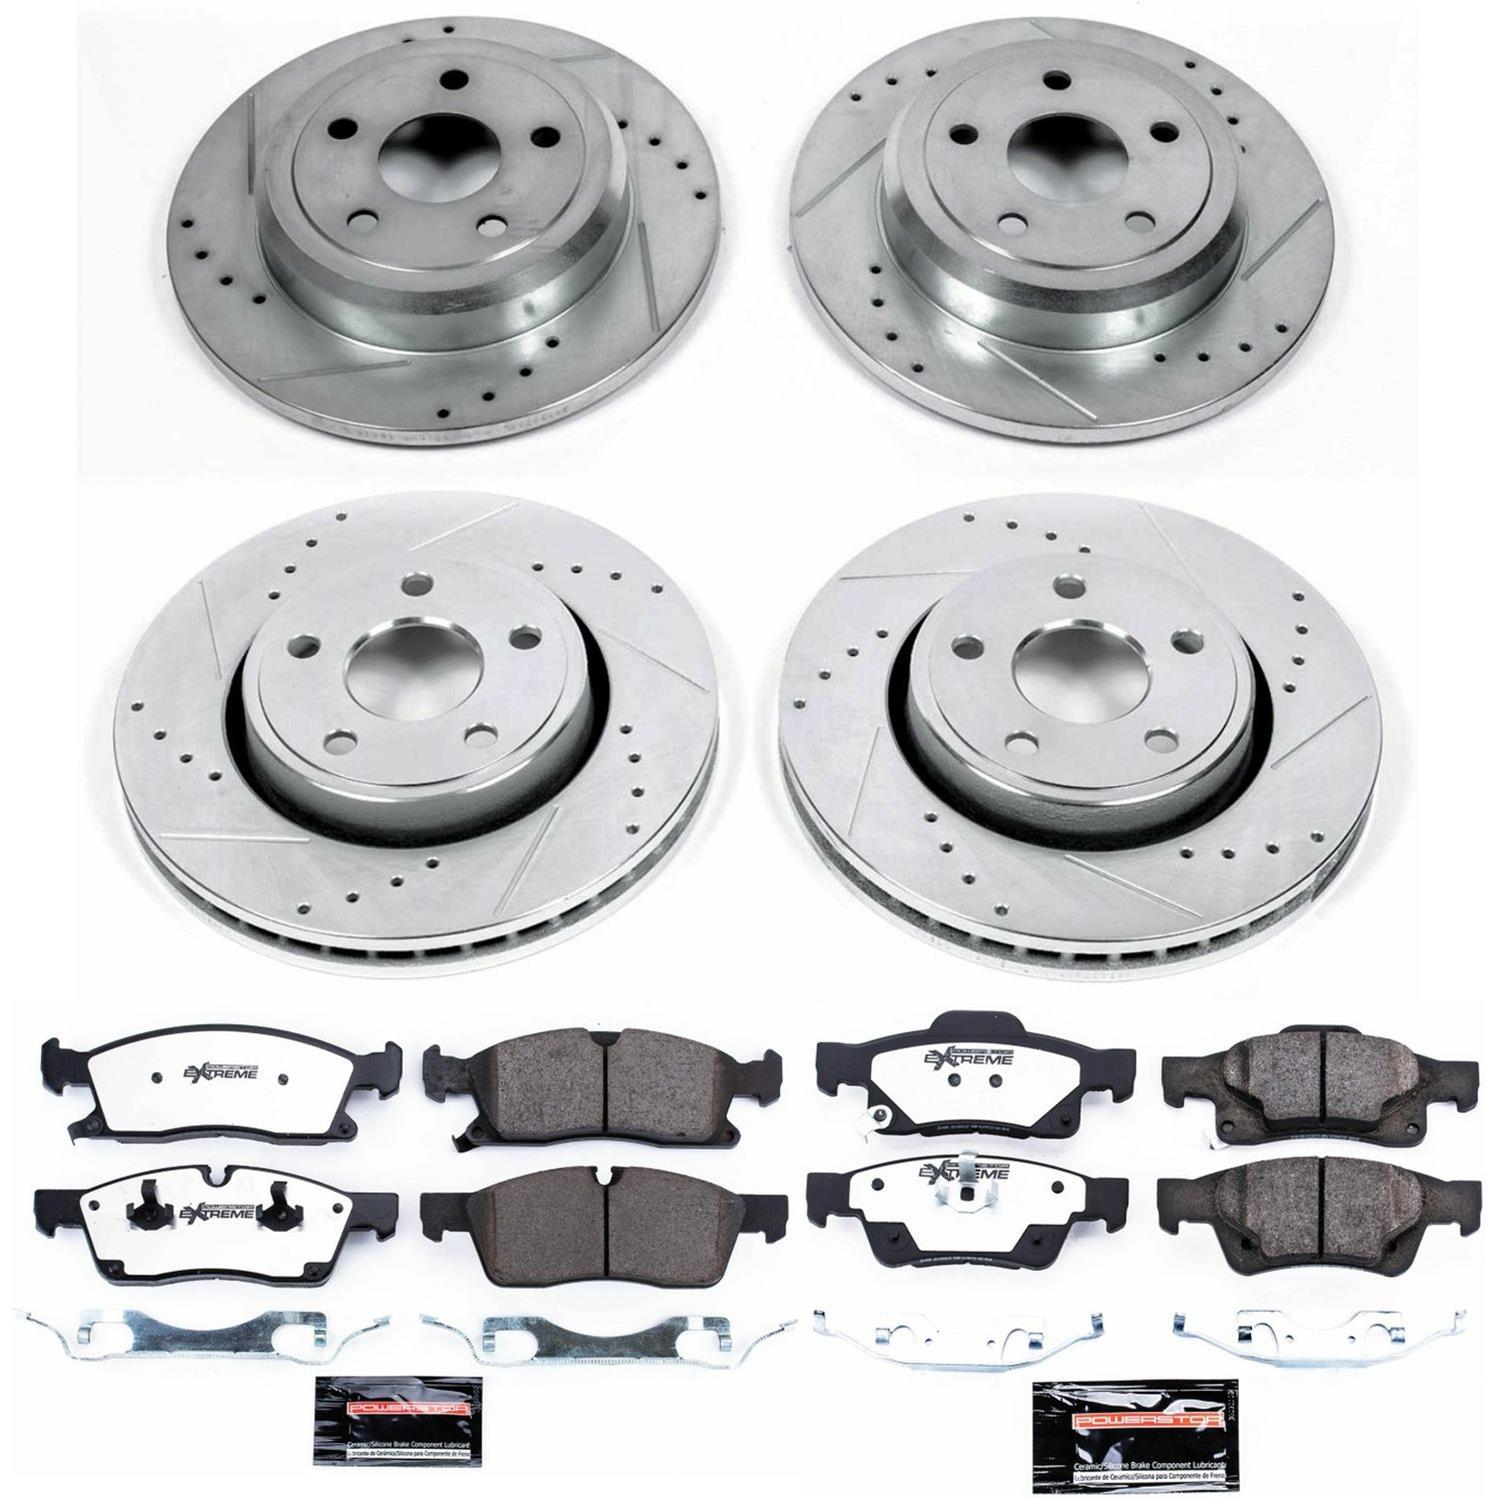 Powerstop 2-Wheel Set Brake Disc and Pad Kits Rear New for Jeep K5950